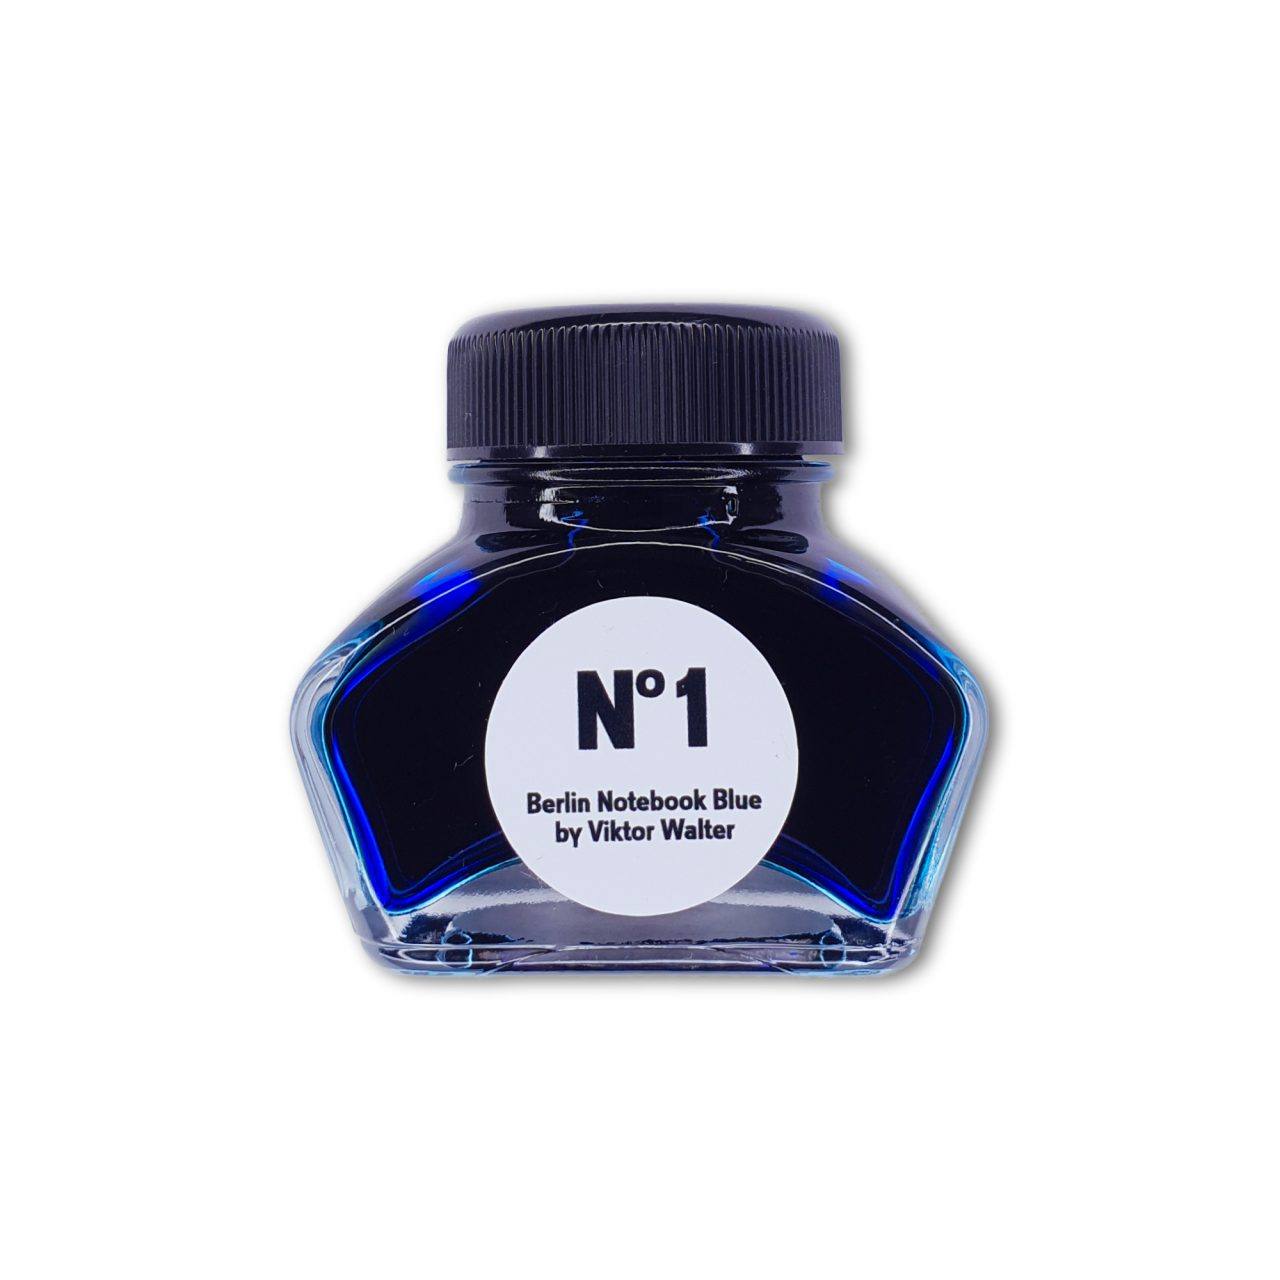 Berlin Notebook Blue No.1 30ml